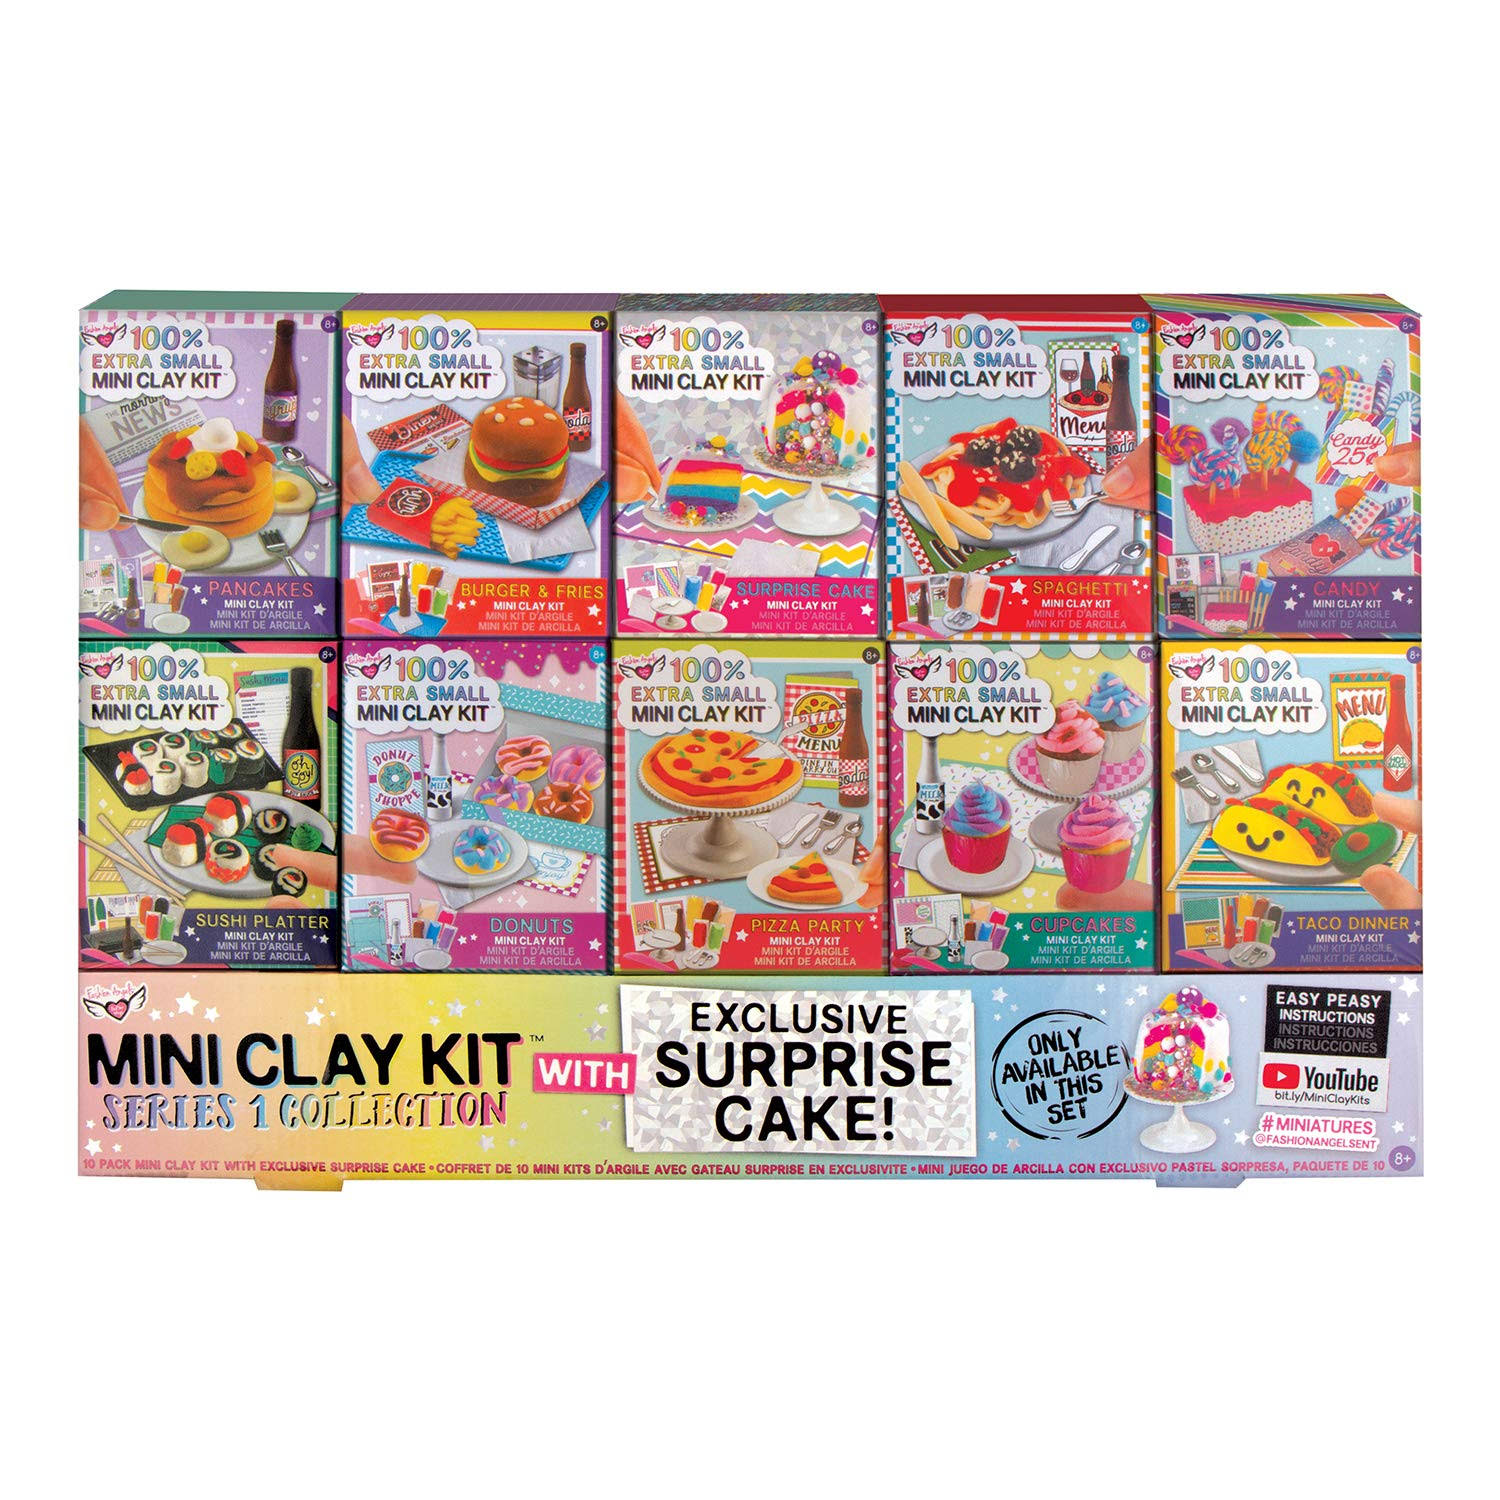 Fashion Angels Extra Small Mini Clay Kit - Set of 10